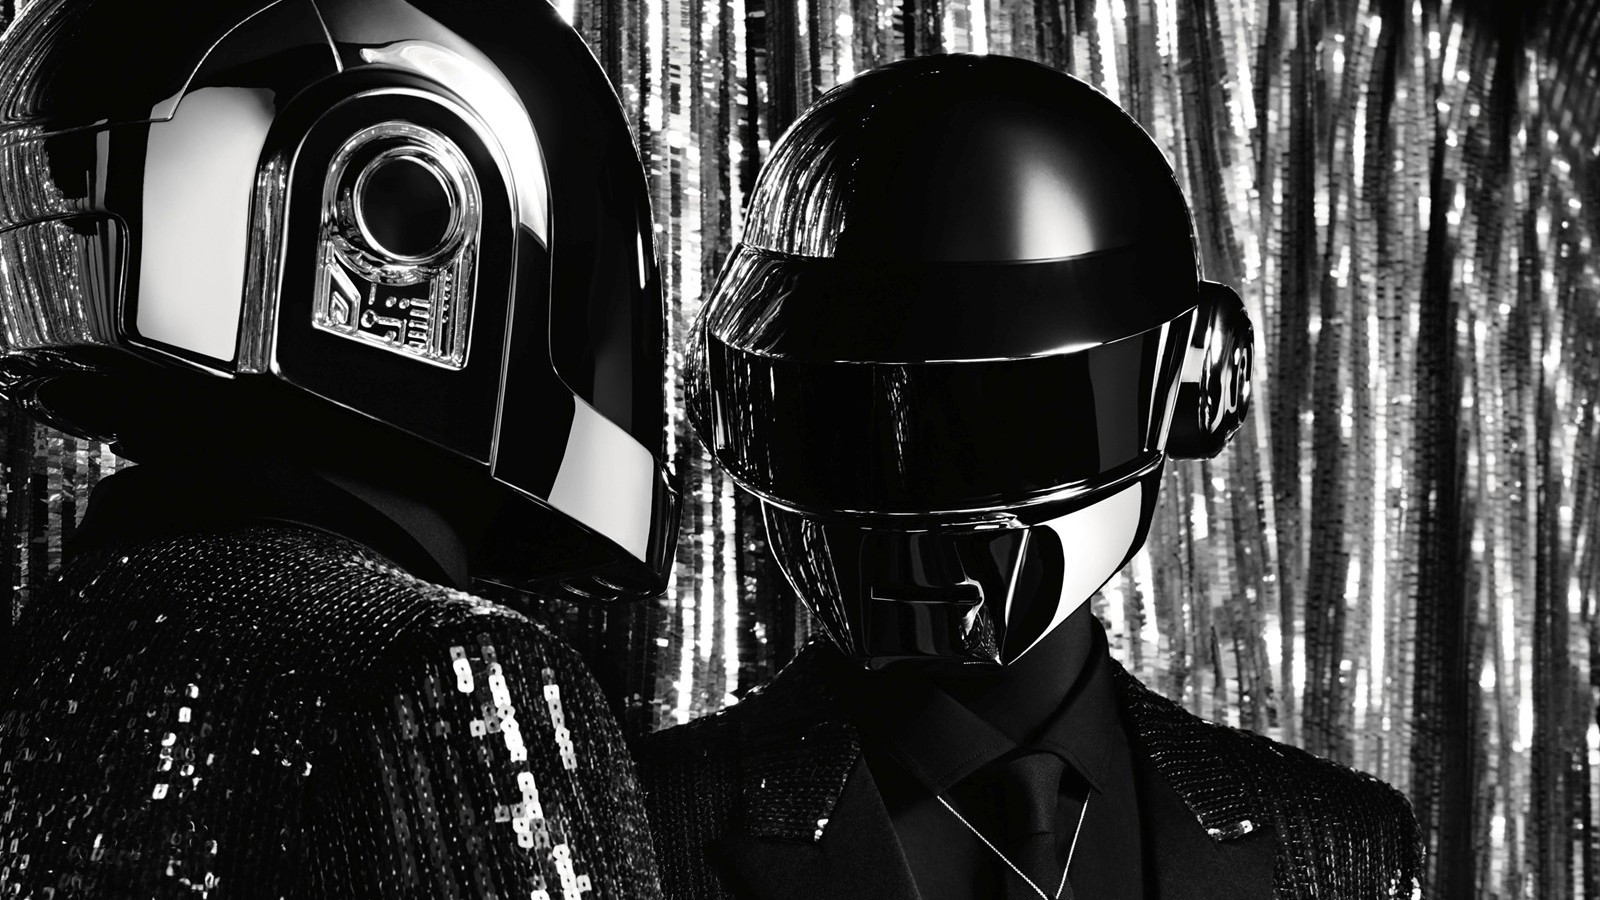 Face to face: Giorgio Moroder vs Daft Punk | Dazed